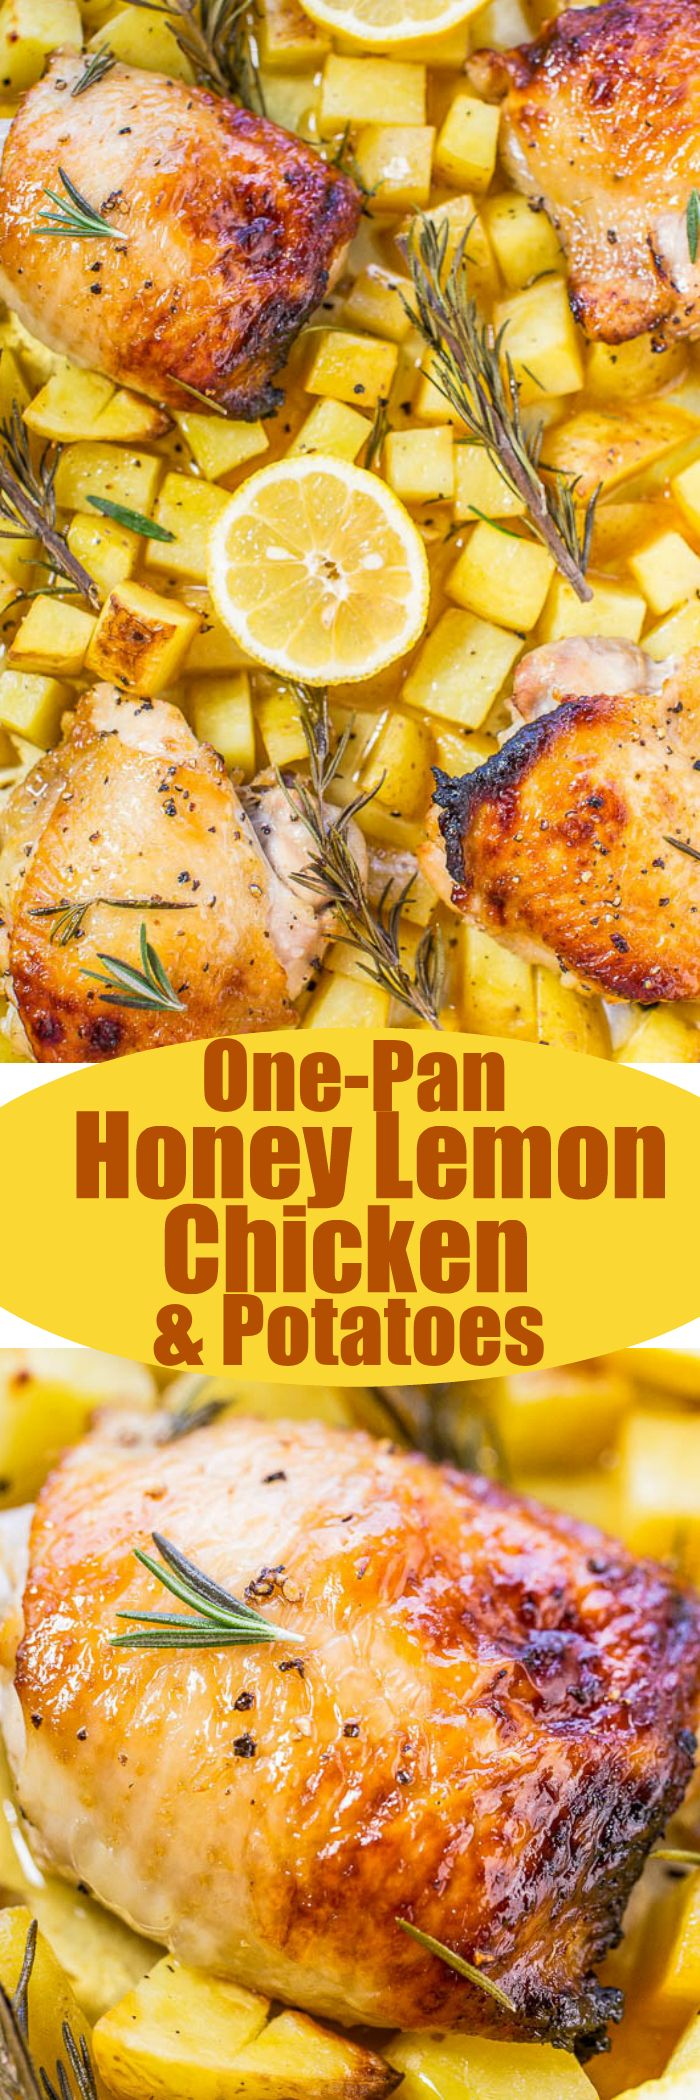 One-Pan Honey Lemon Chicken and Roasted Potatoes - Juicy chicken with a honey lemon glaze that's tangy-sweet and so good!! Healthy, fast, so easy, and cleanup is a breeze!!